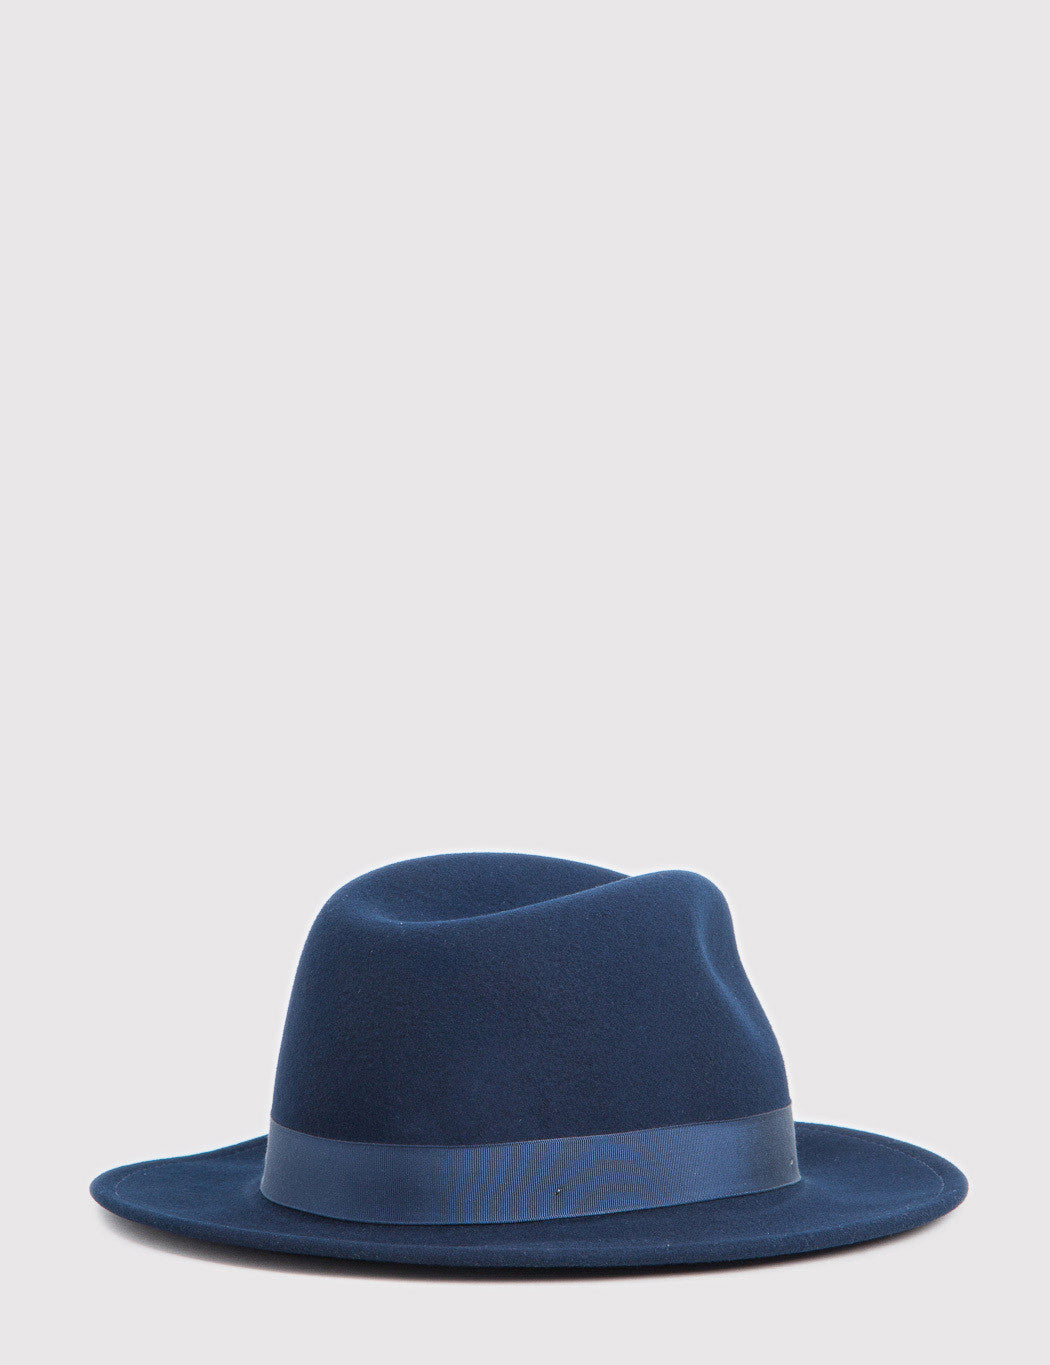 Bailey Curtis Widebrim Fedora Hat - Navy Blue